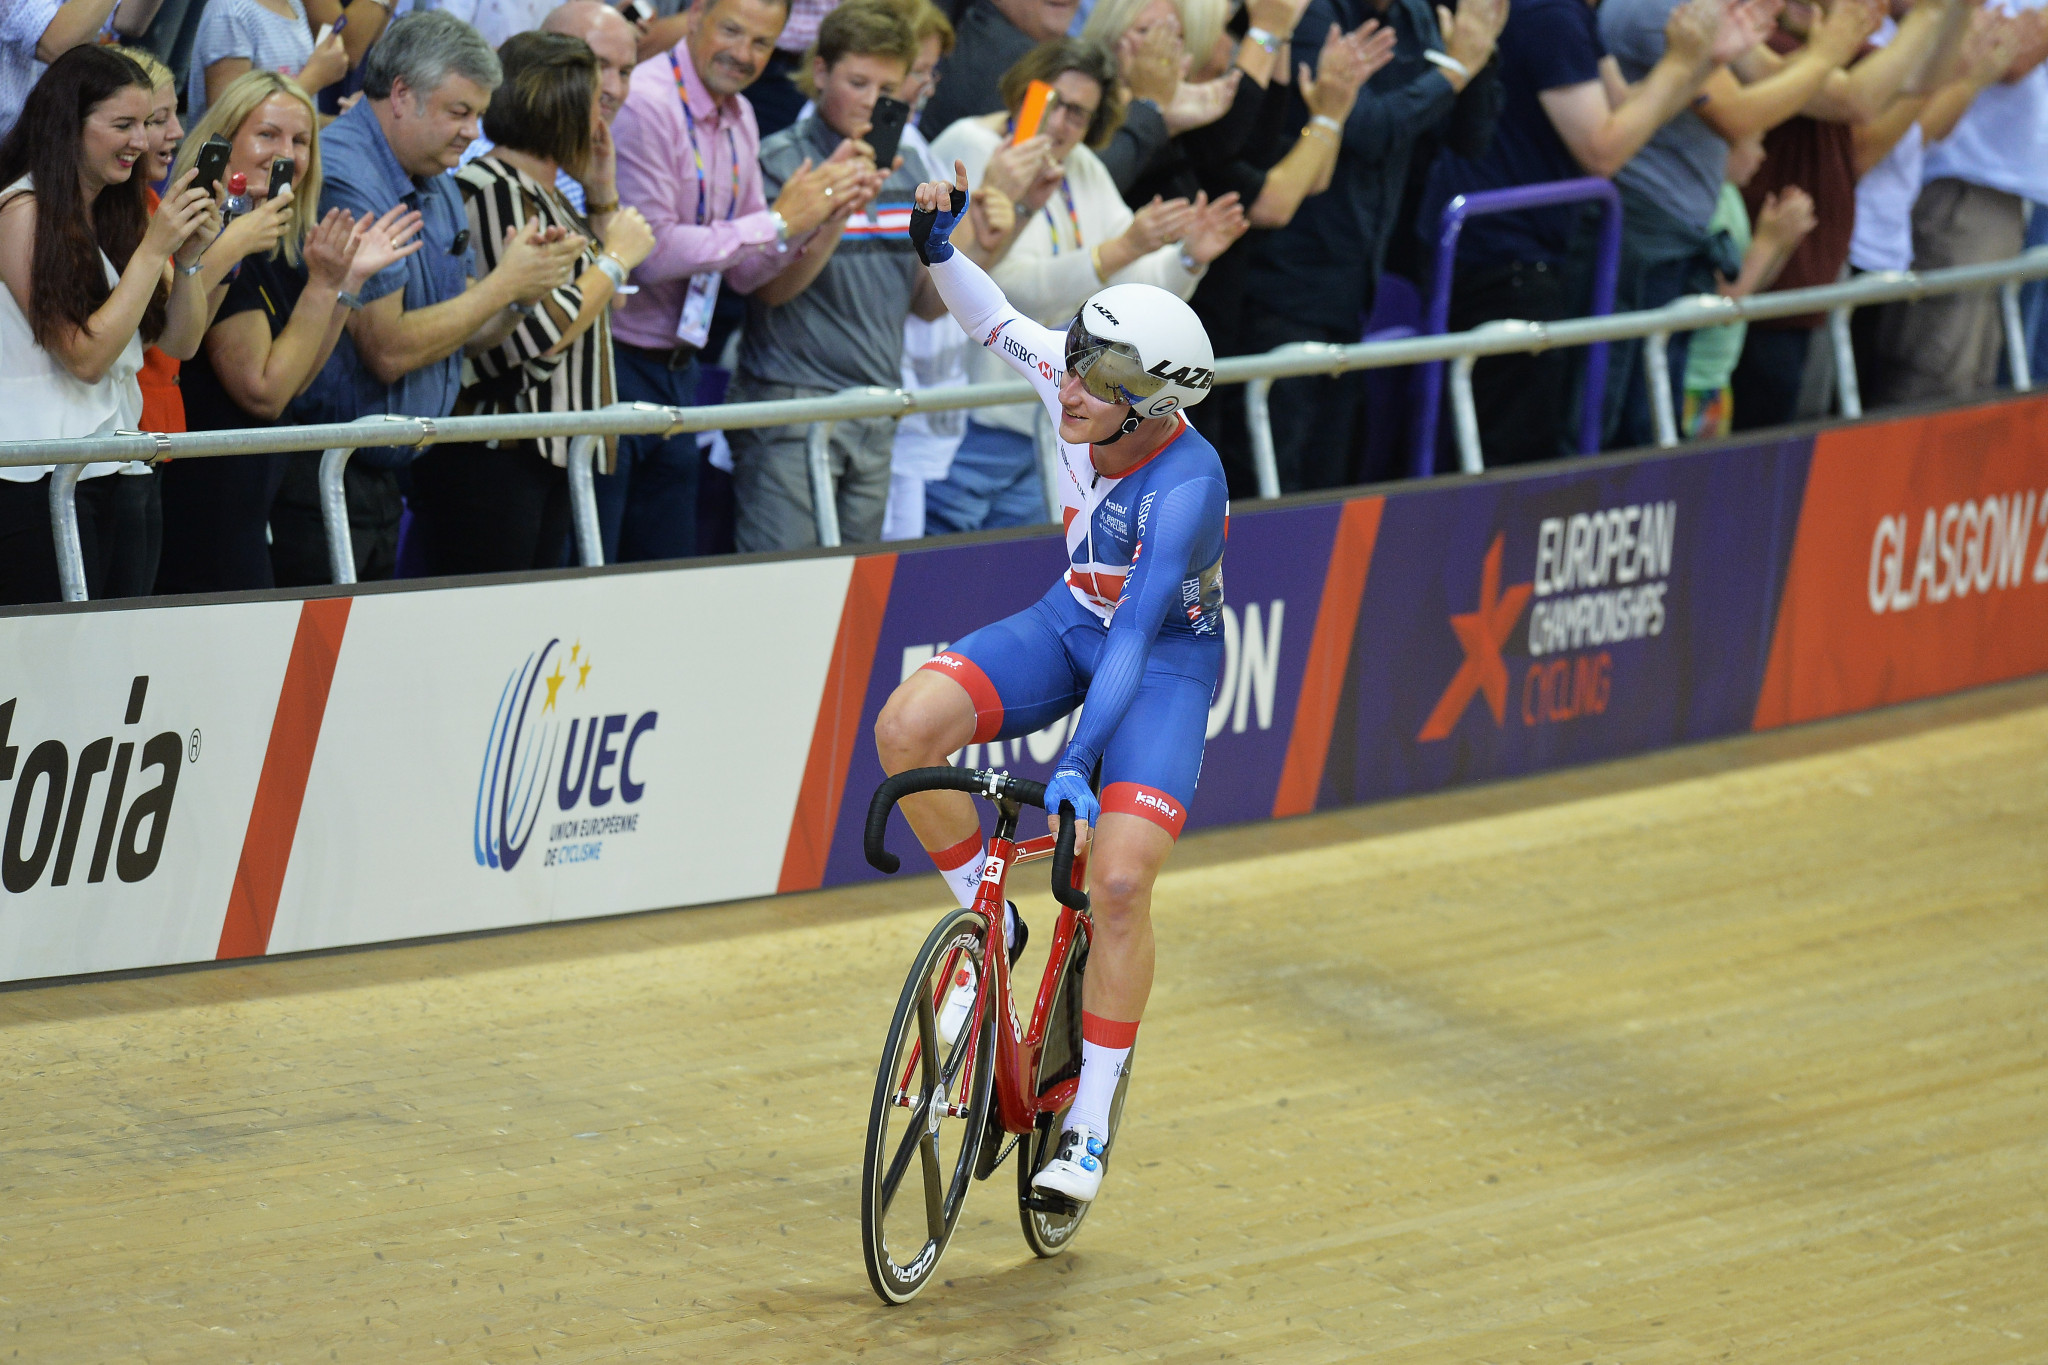 Hayter triumphs for hosts in men's omnium at European Championships